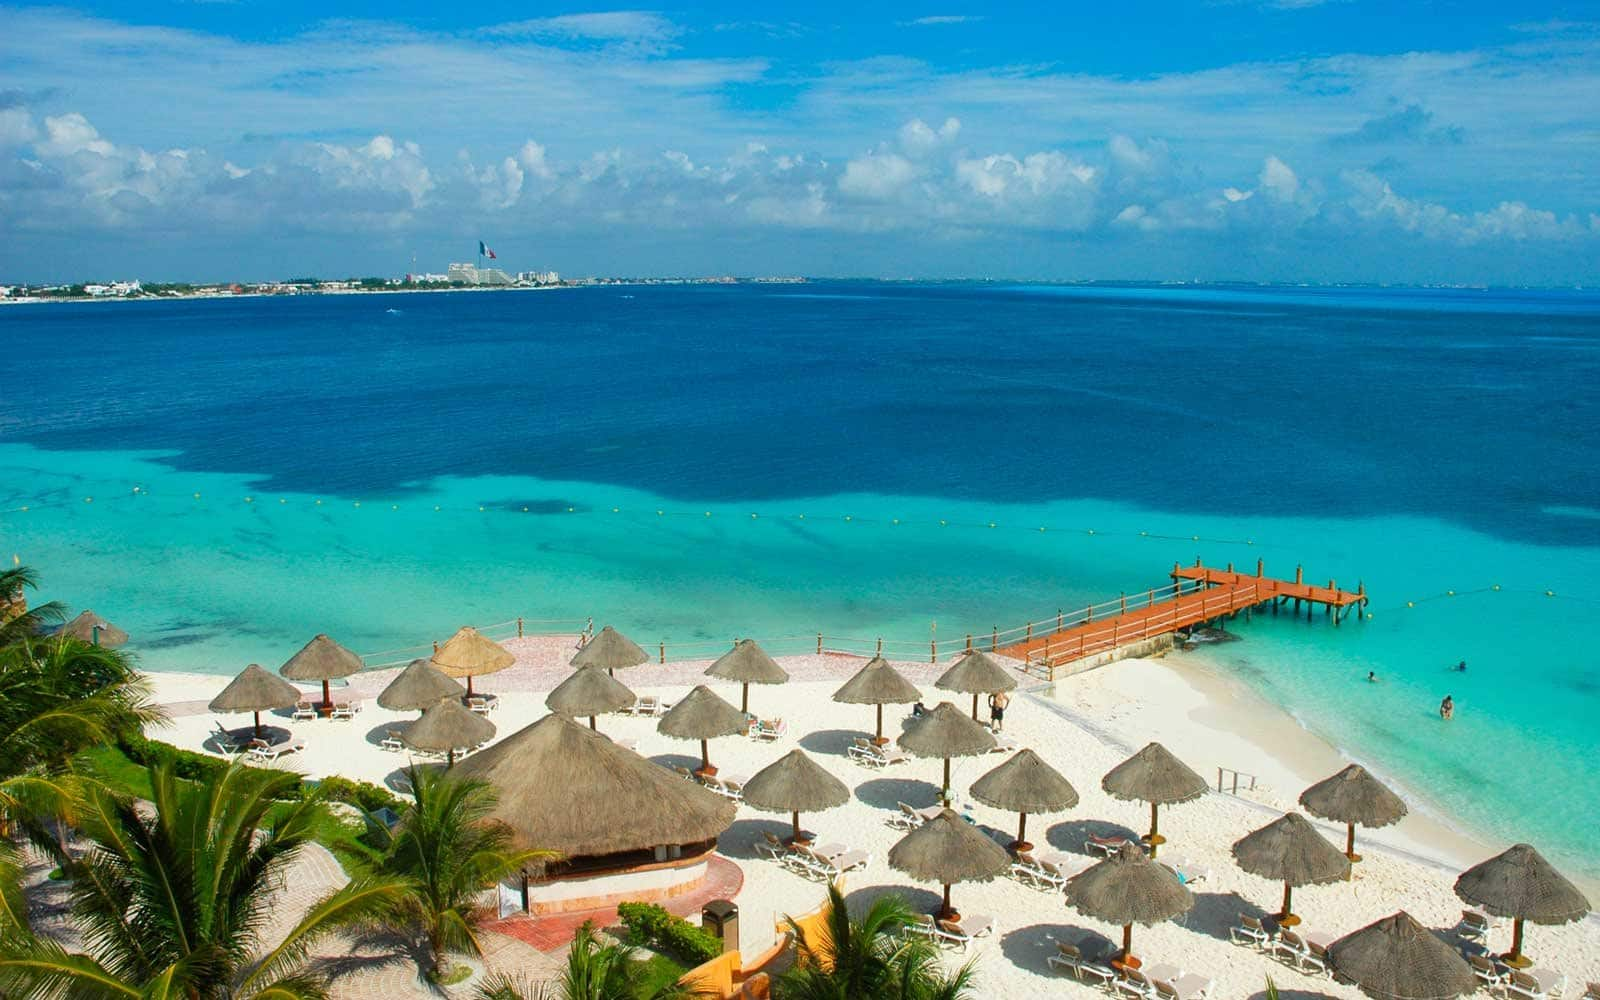 Dallas to Cancun Mexico $176 RT Airfares on American Airlines BE (Flexible Ticket Travel July - August 2020)